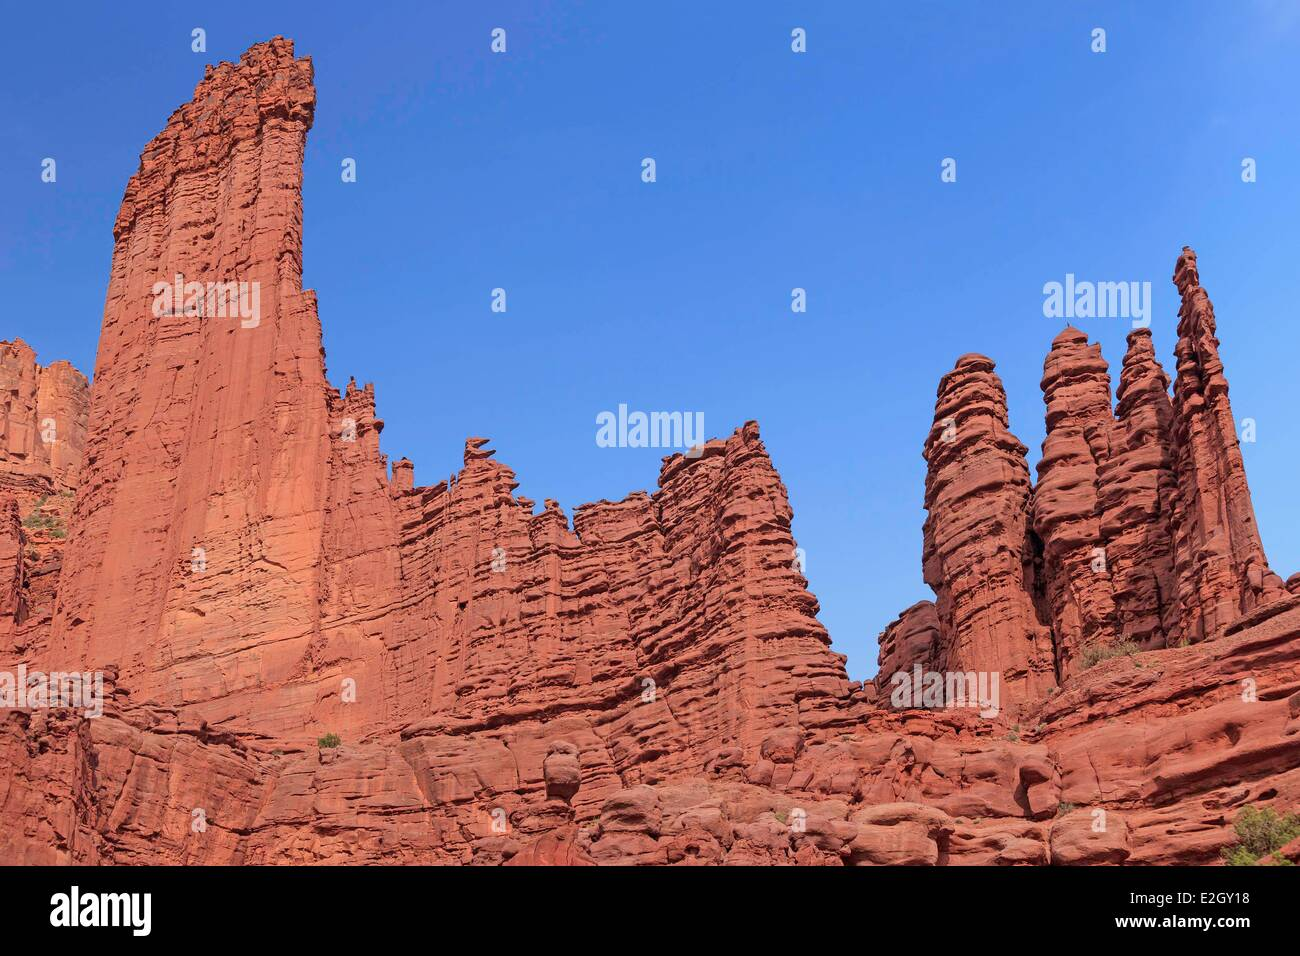 United States Utah Colorado Plateau Fisher Towers rock formations near Moab - Stock Image